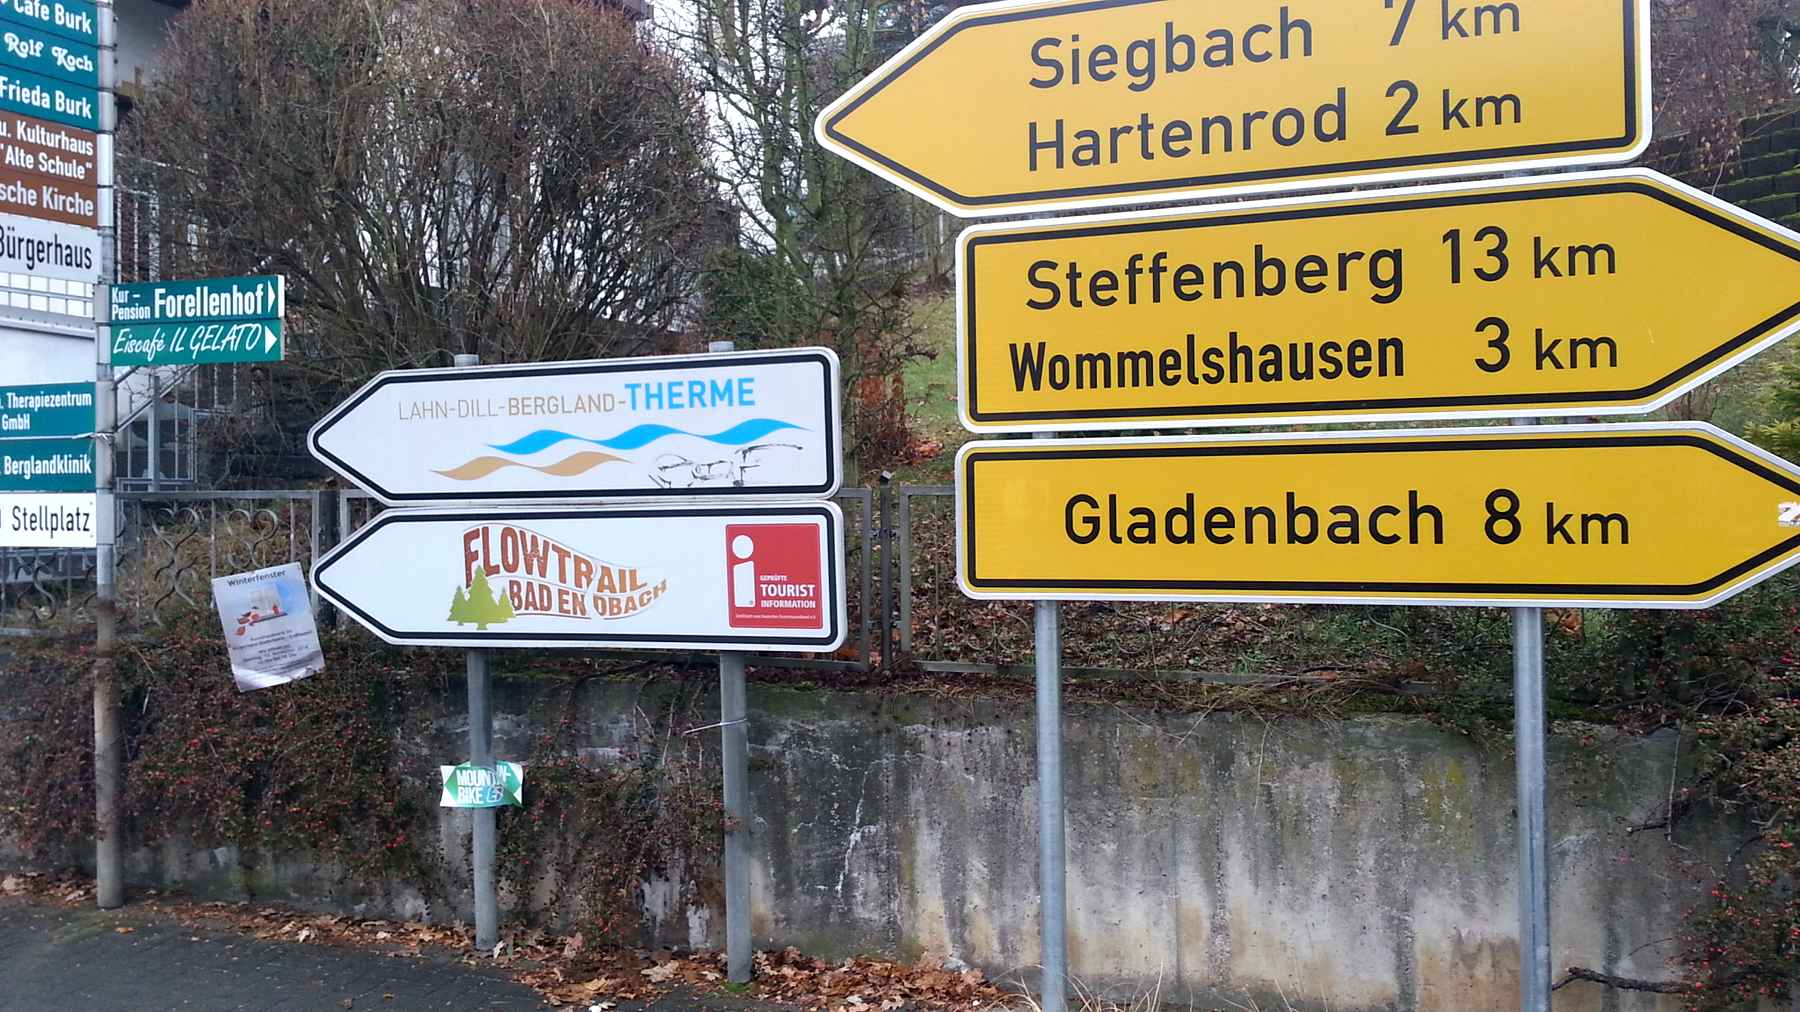 On the road: Flowtrail Bad Endbach | Bikeparks in Hessen